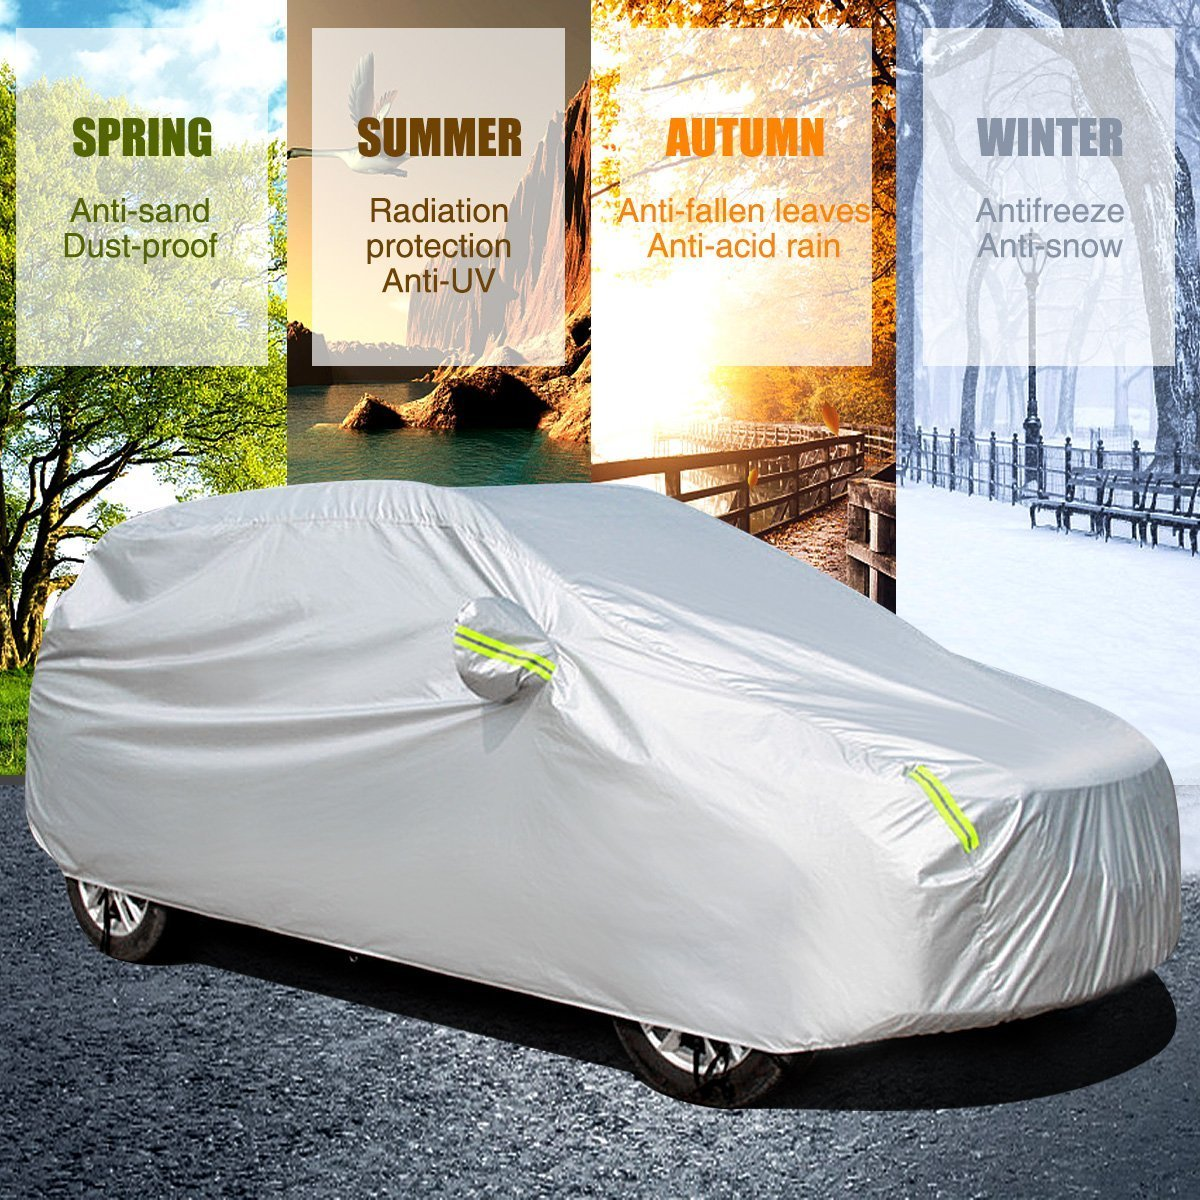 185L X 70.9W X 59.1H MATCC Car Cover Waterproof and UV Proof Outdoor or Indoor Breathable Auto Cover for Full Car Fits Sedan Protect from Moisture Corrosion Dust Dirt Scrapes